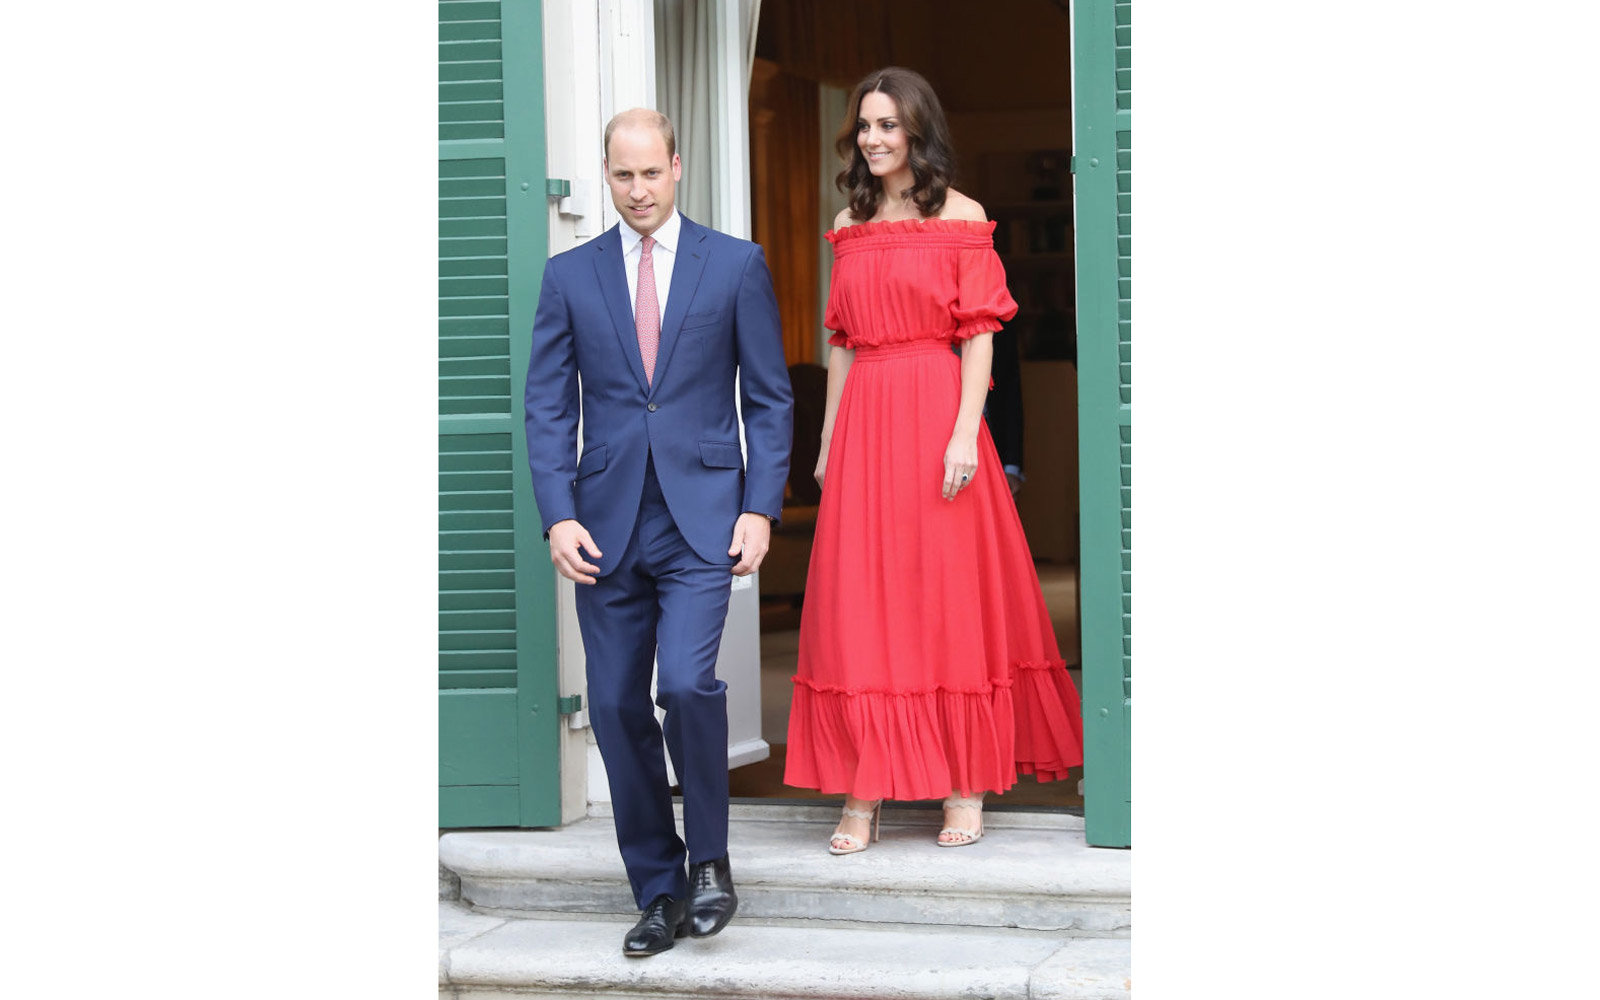 BERLIN, GERMANY - JULY 19:  Prince William, Duke of Cambridge and Catherine, Duchess of Cambridge attend The Queen's Birthday Party at the British Ambassadorial Residence during an official visit to Poland and Germany on July 19, 2017 in Berlin, Germany.